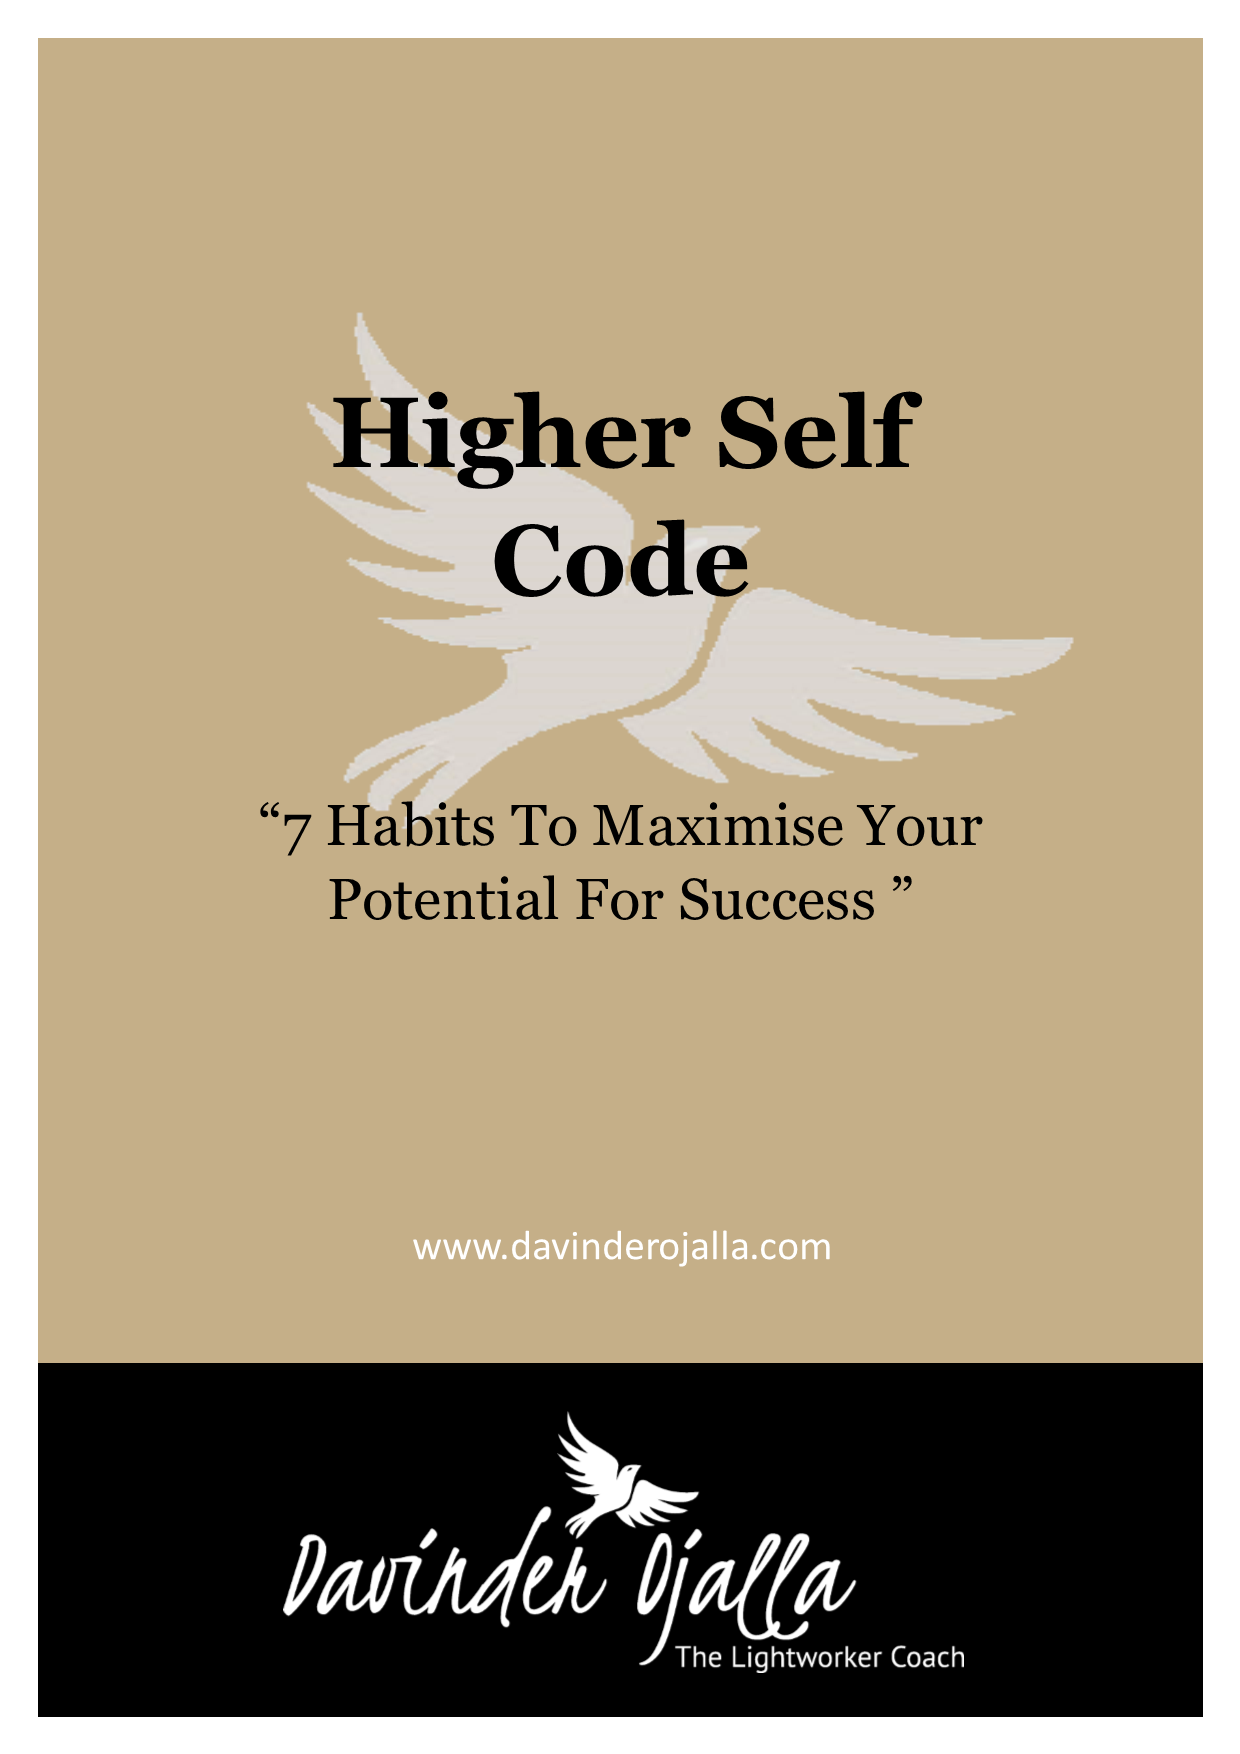 Higher Self Code